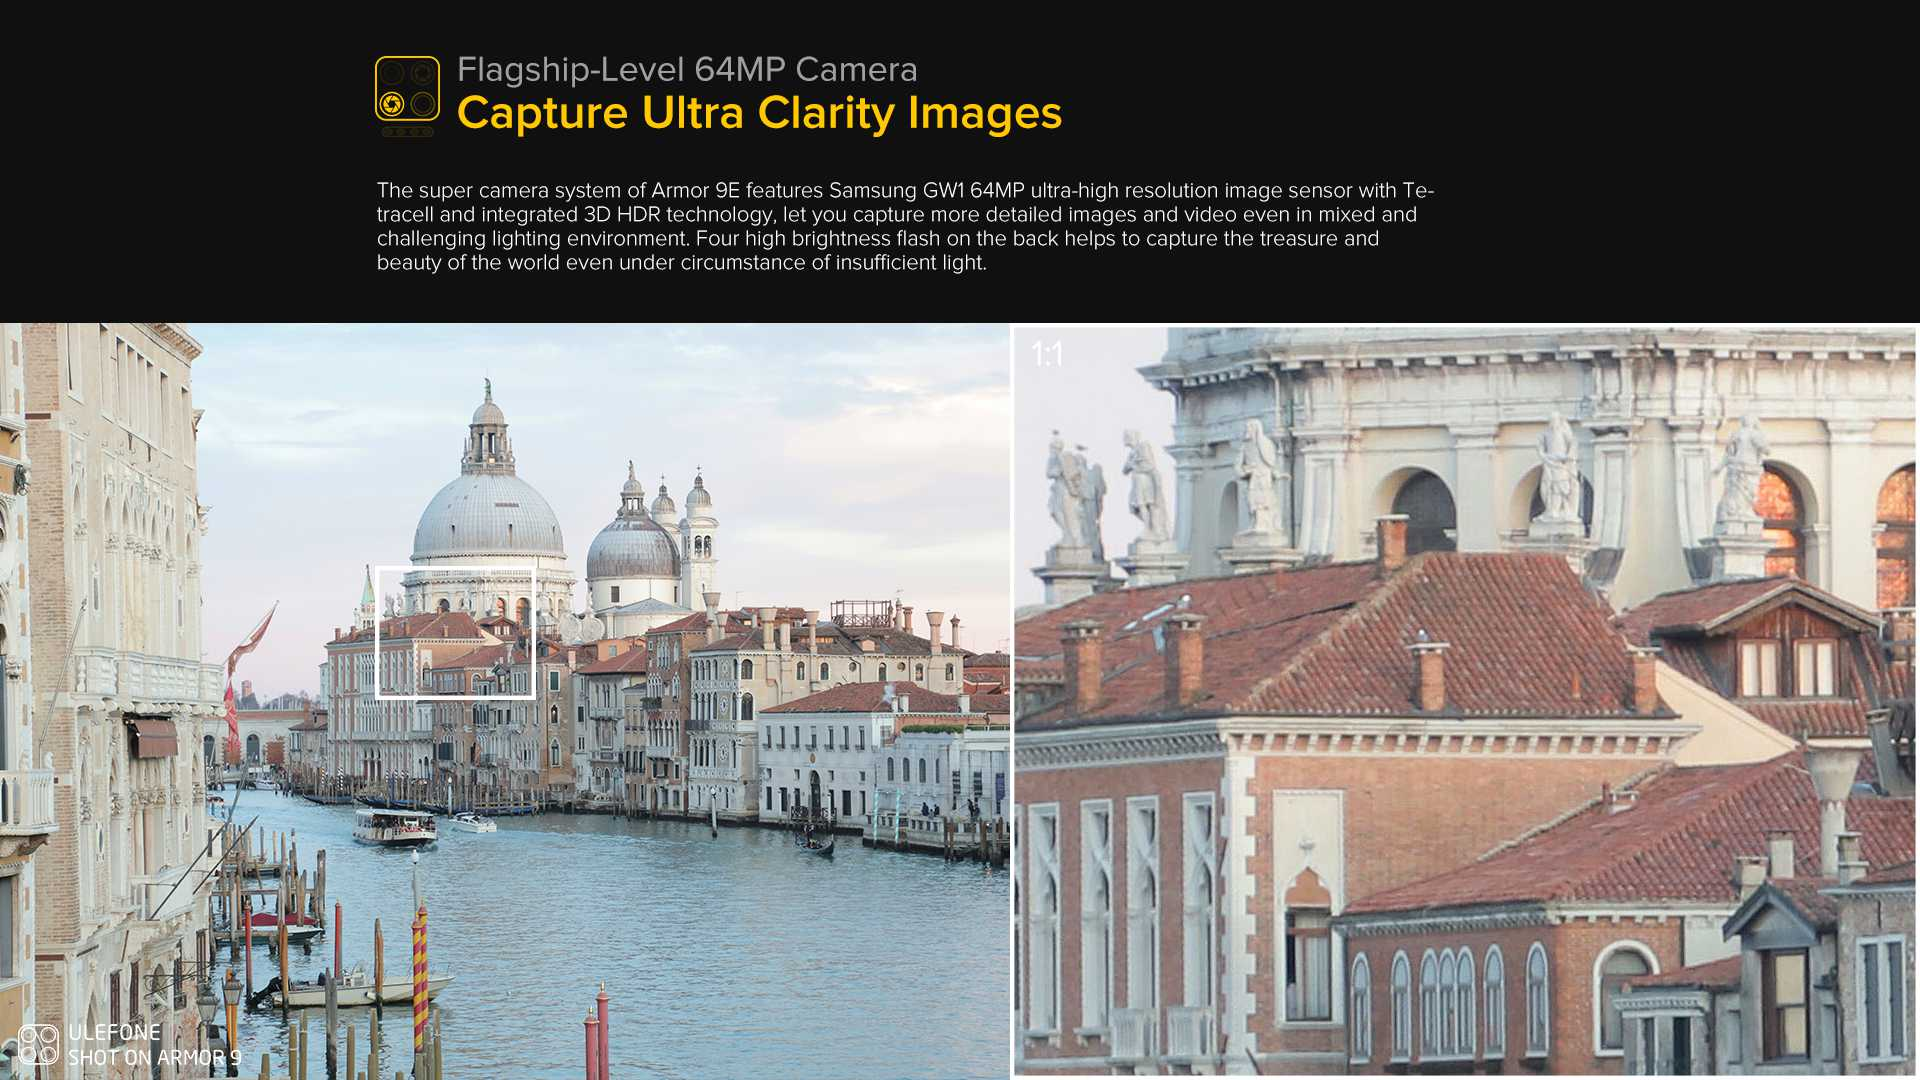 64MP ultra clear images